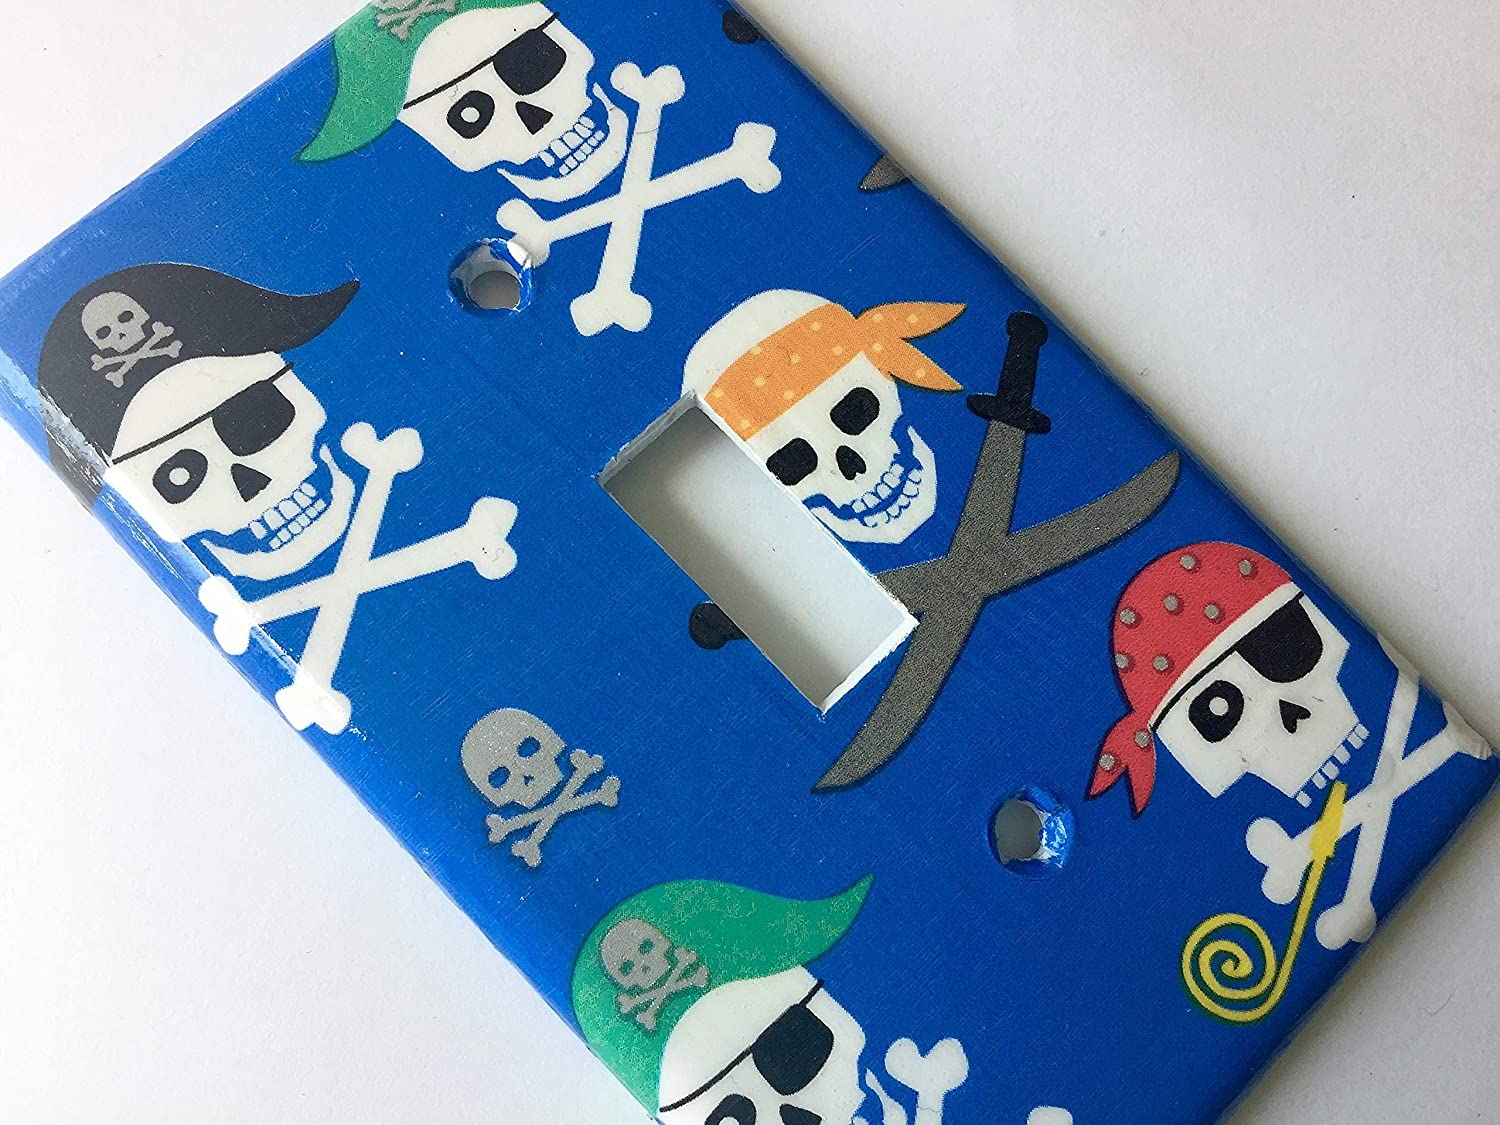 Pirate Skull Light Switch Cover Various Size Light Switchplates Offered